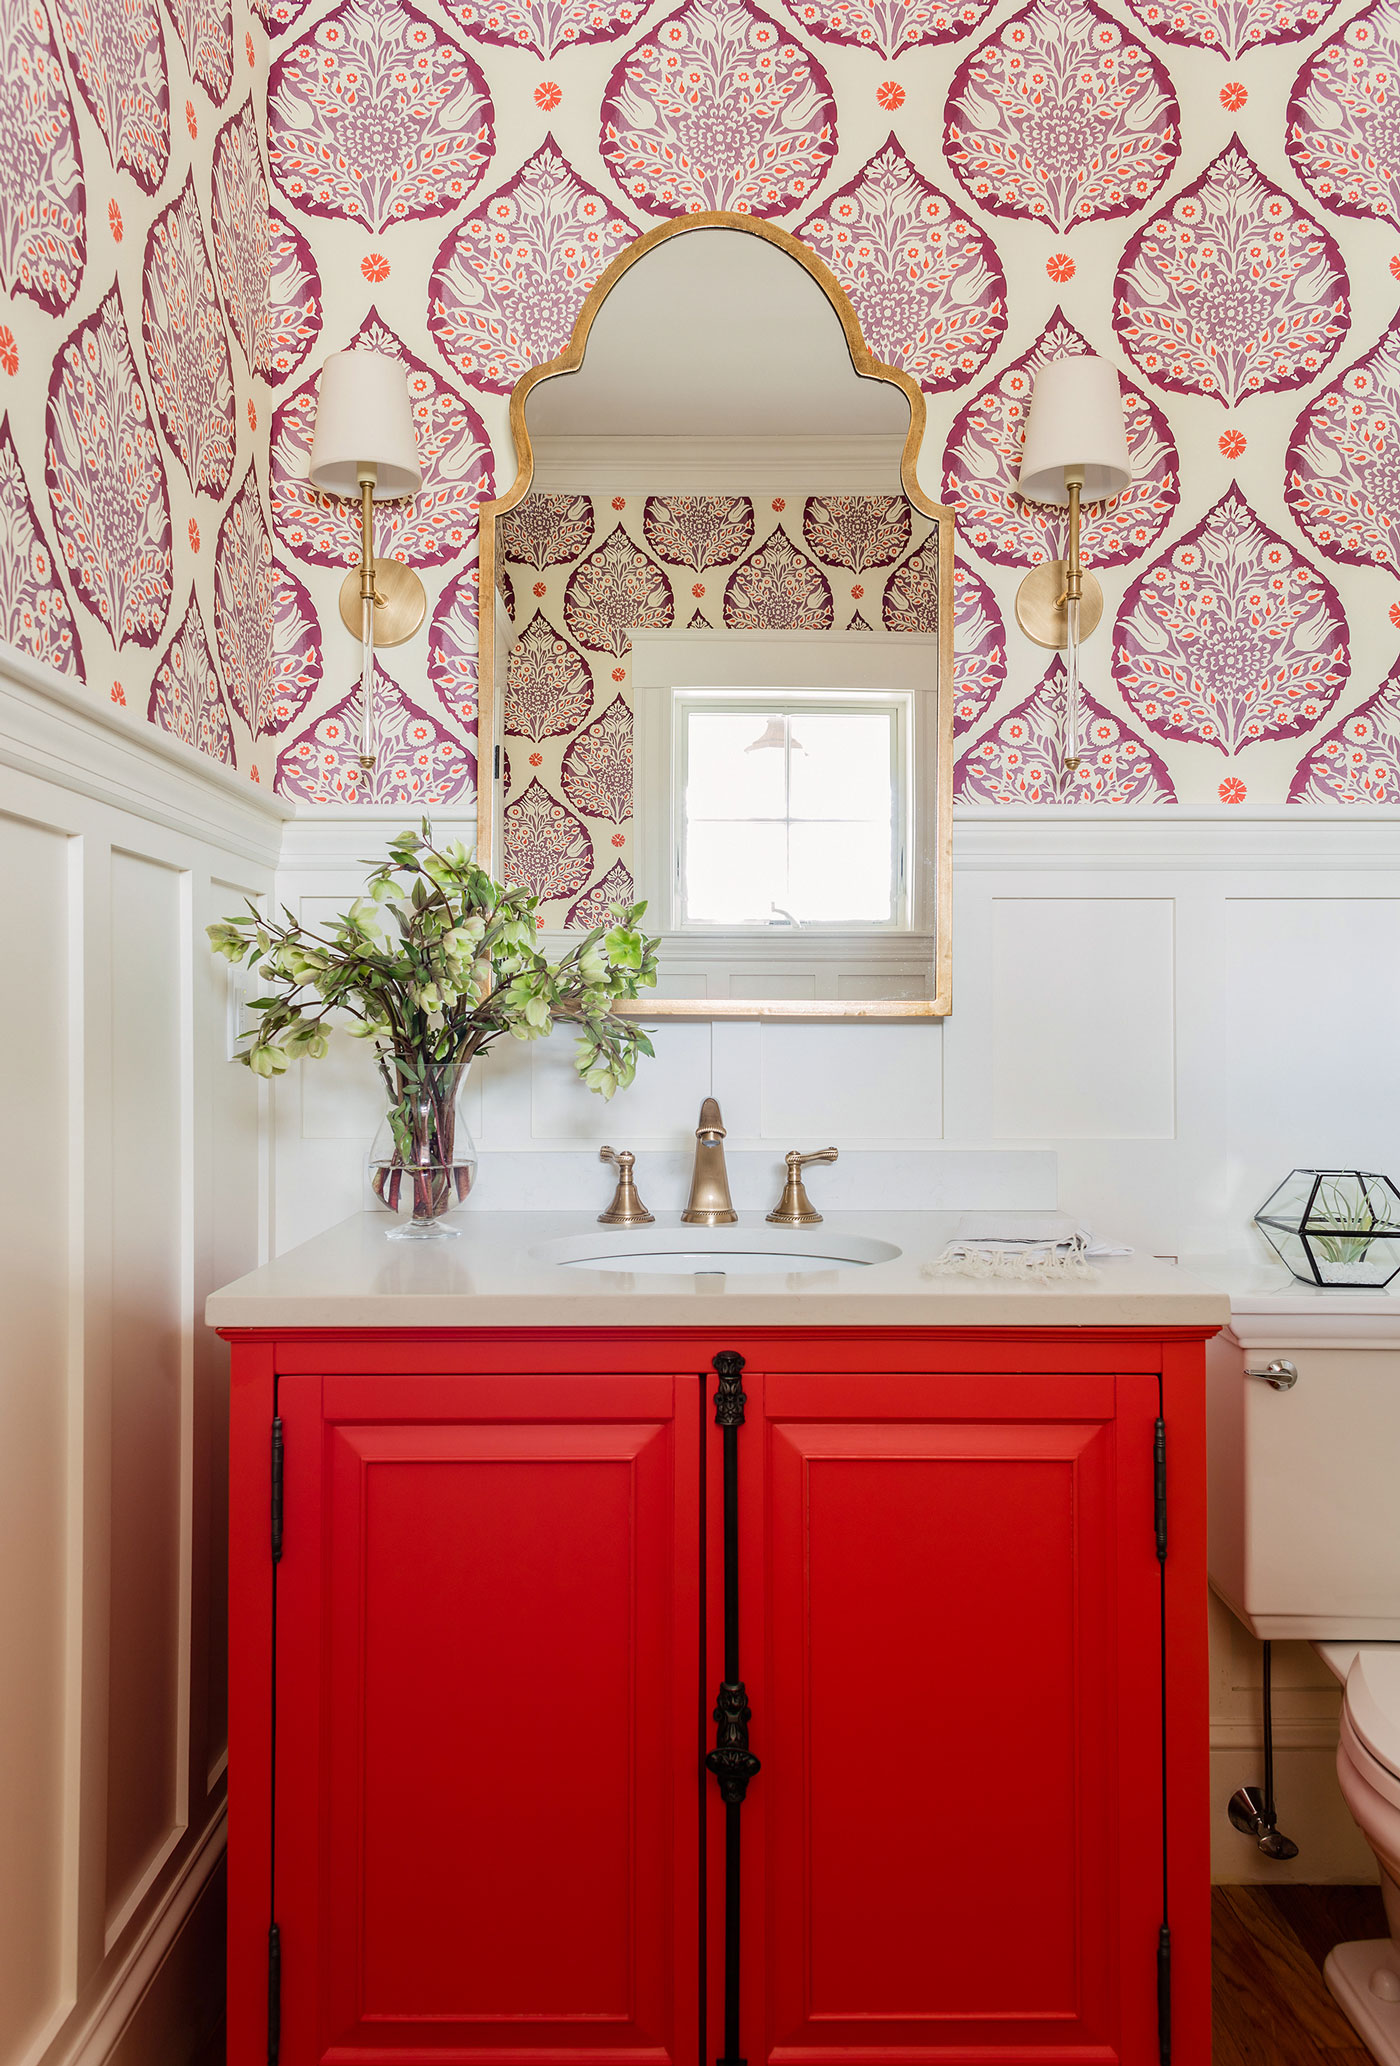 Colorful powder room with red cabinet doors and white paneled walls